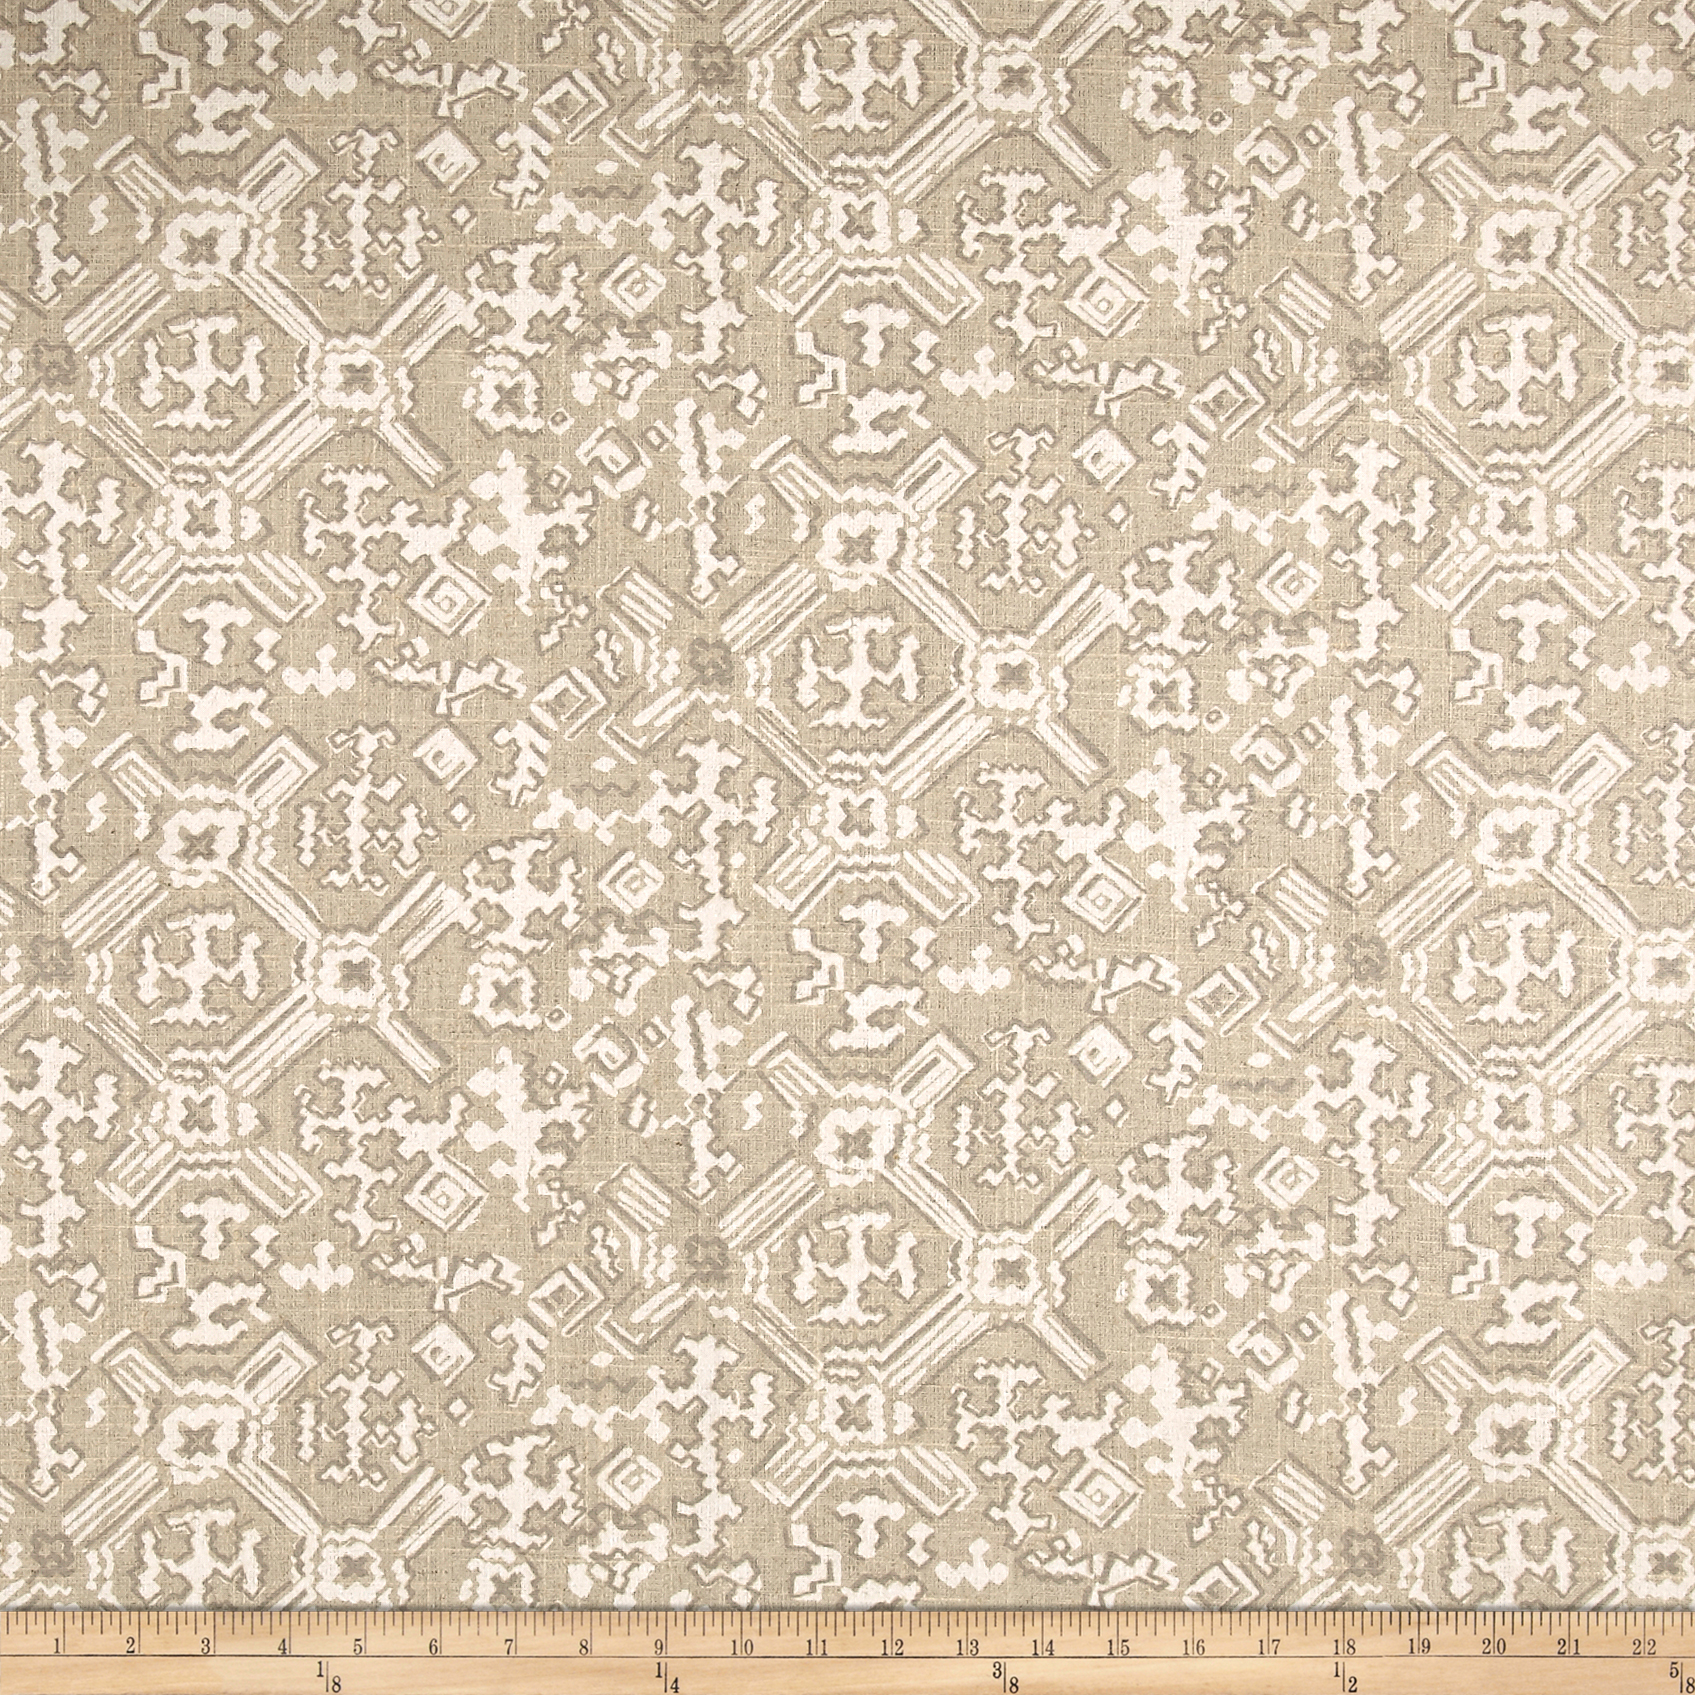 Lacefield Nomad Chalk Pearlized Fabric by Lacefield in USA